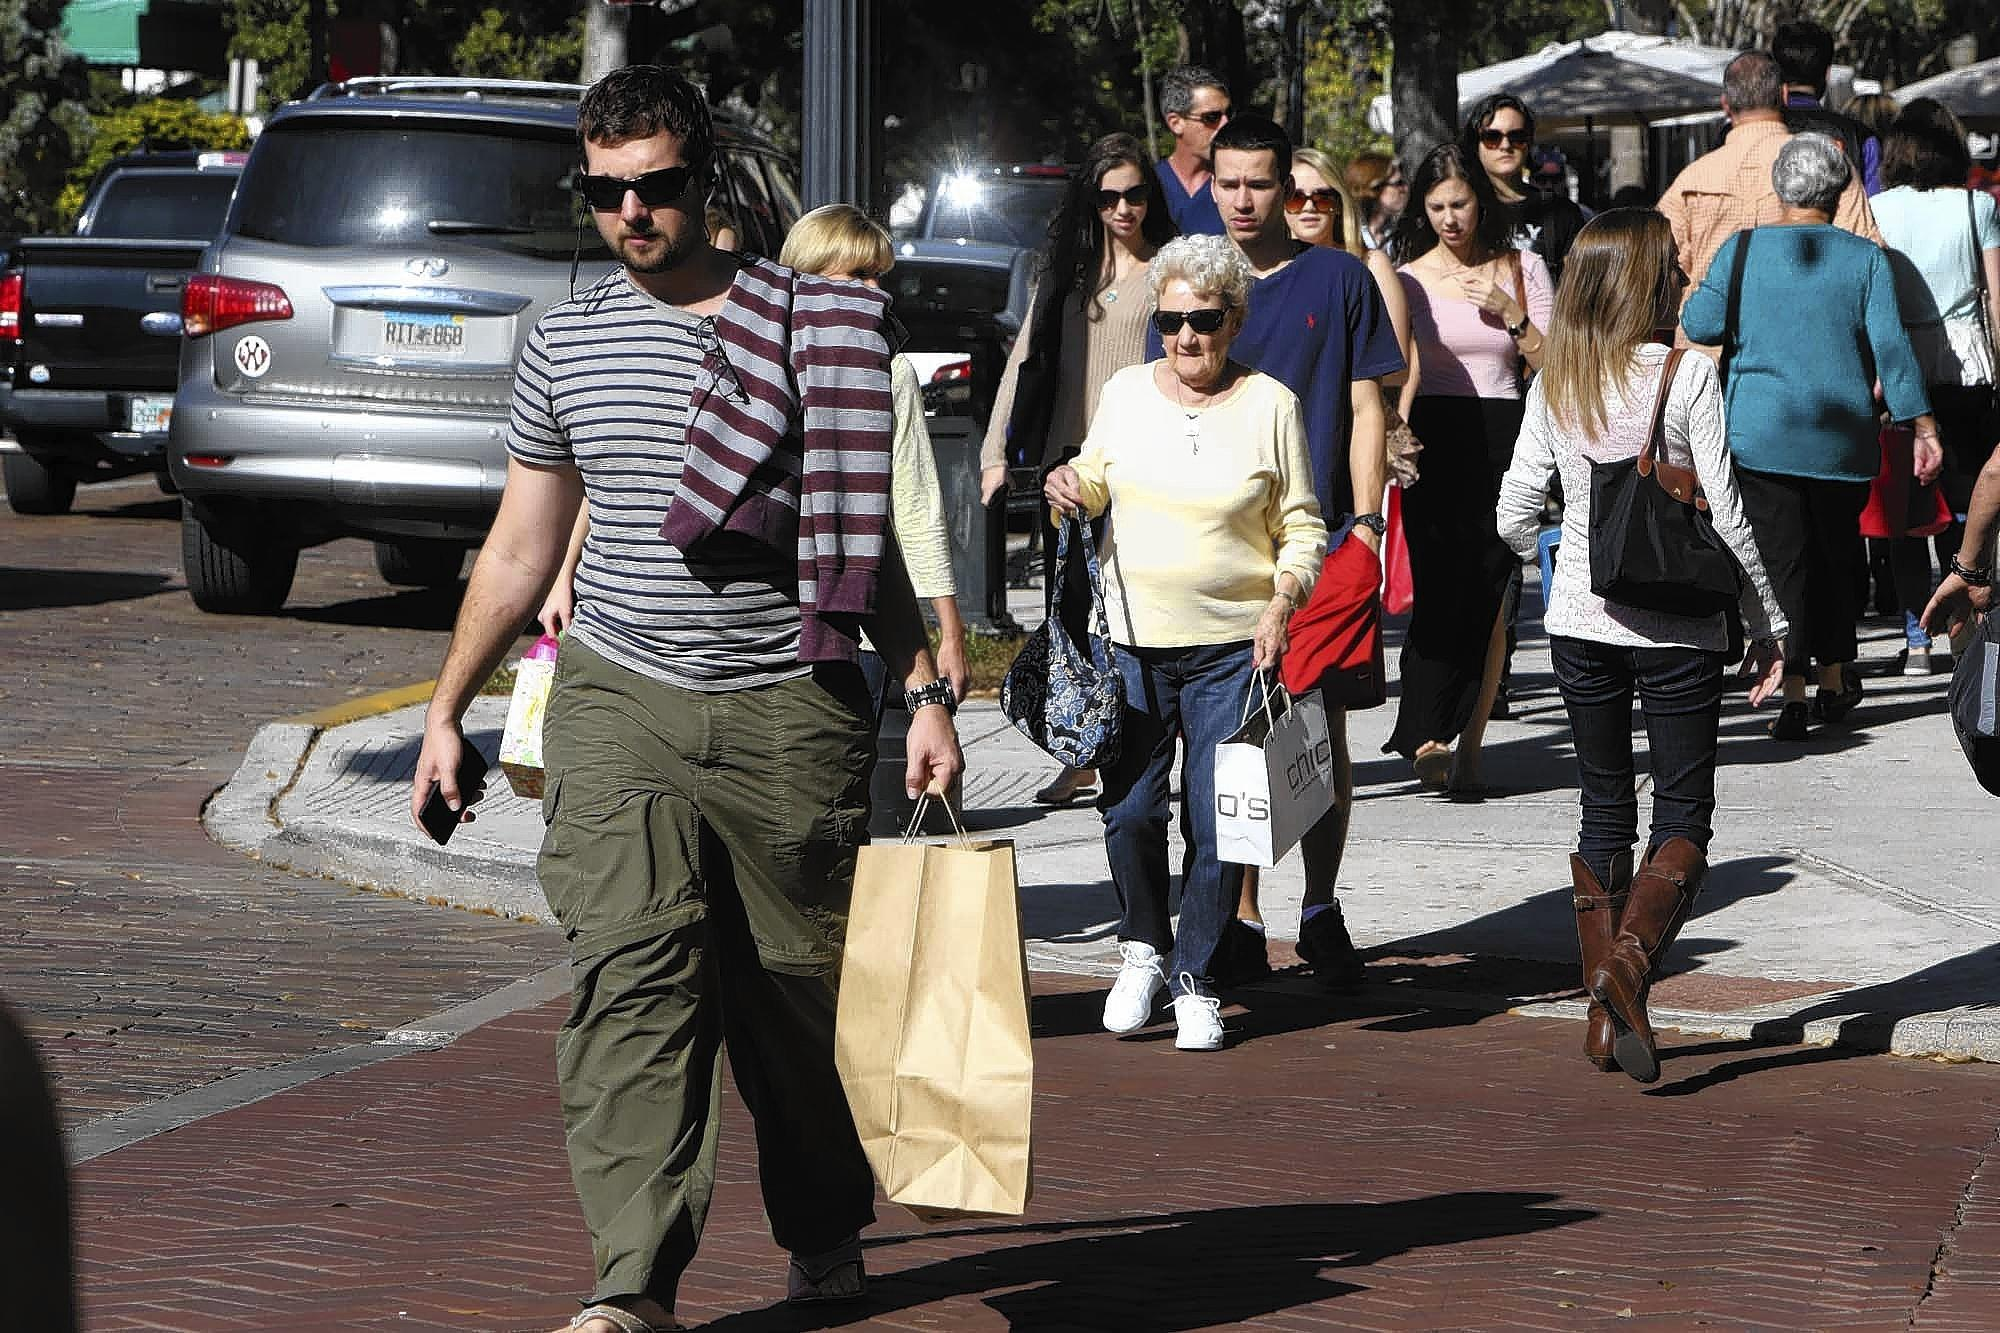 Christmas shoppers on Park Avenue in Winter Park on Dec. 20, 2013.